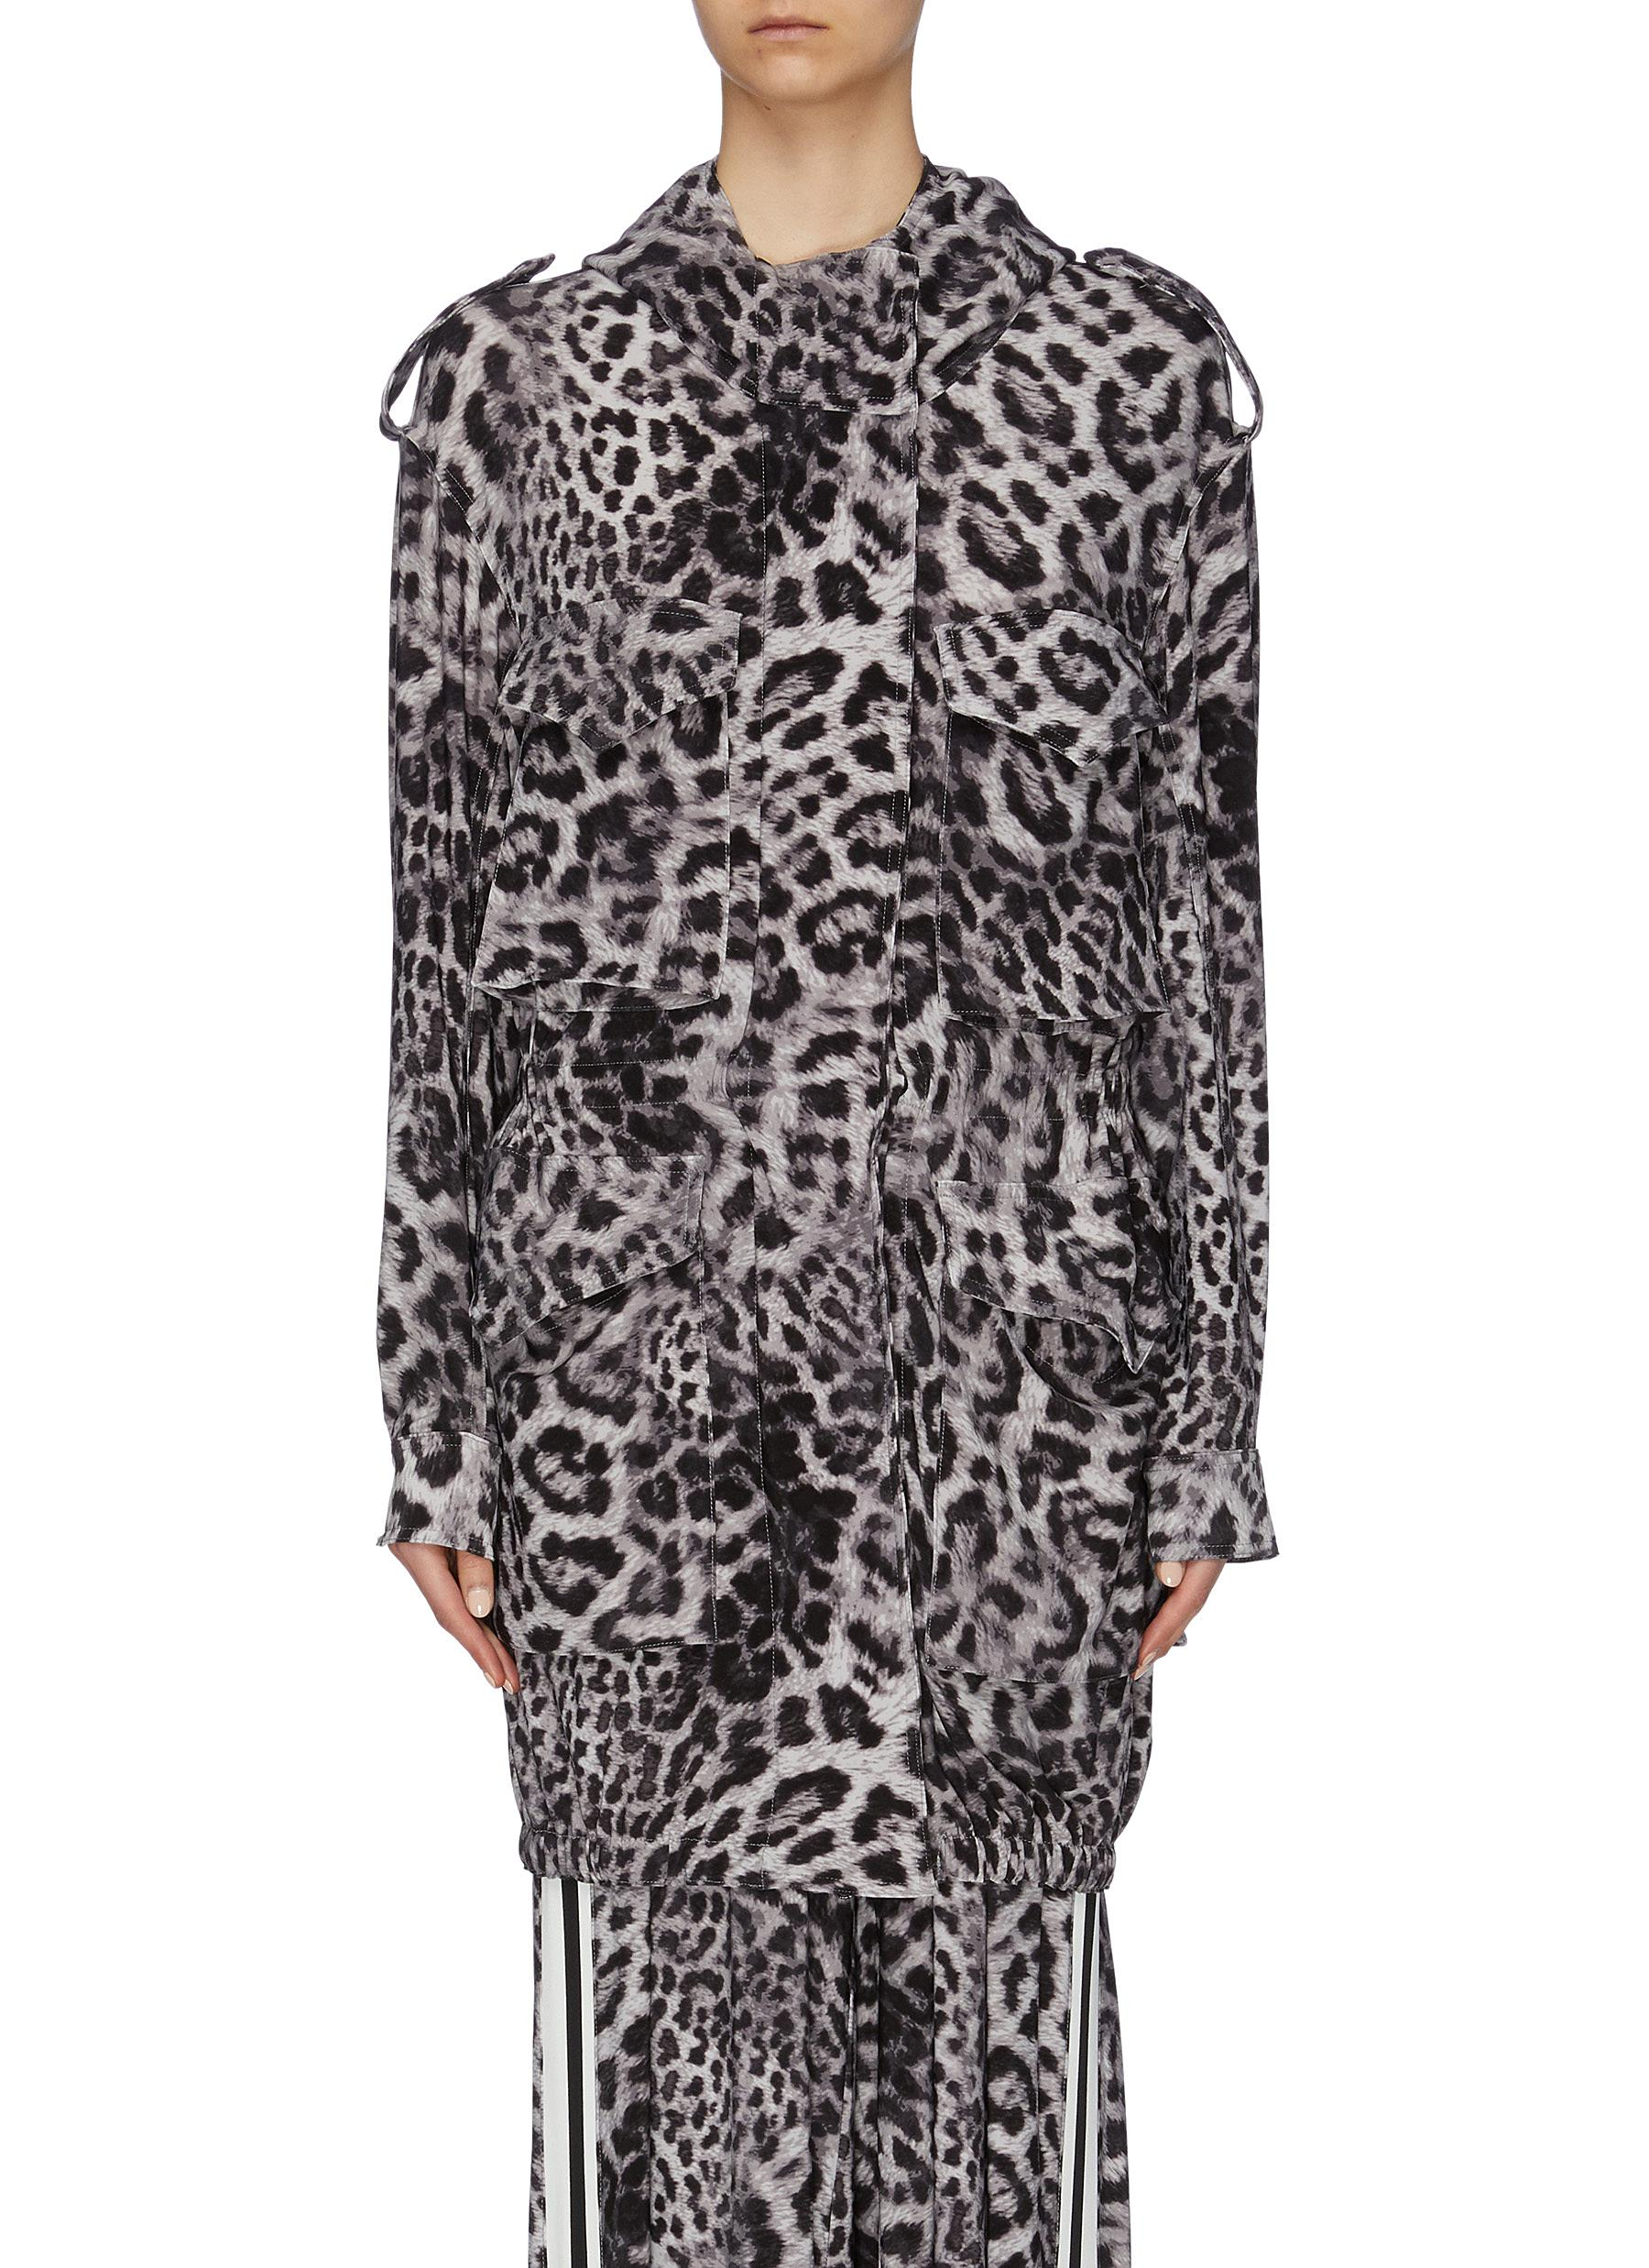 Leopard print hooded cargo jacket by Norma Kamali